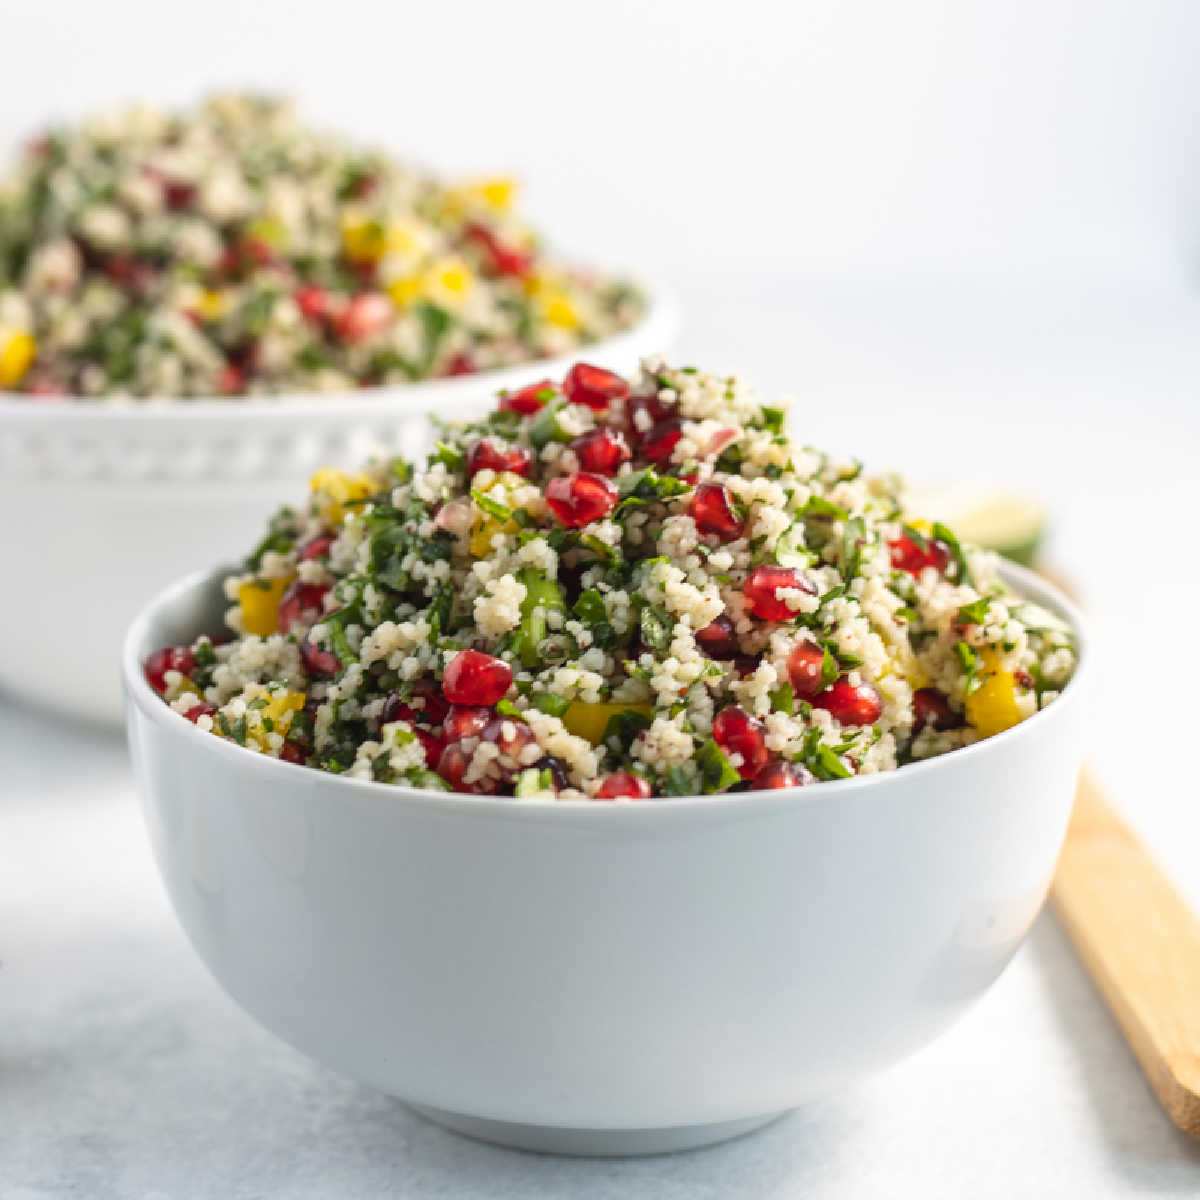 Bowl of pomegranate couscous salad with fresh herbs, bright pomegranate arils and bits of yellow bell pepper, ready to eat.